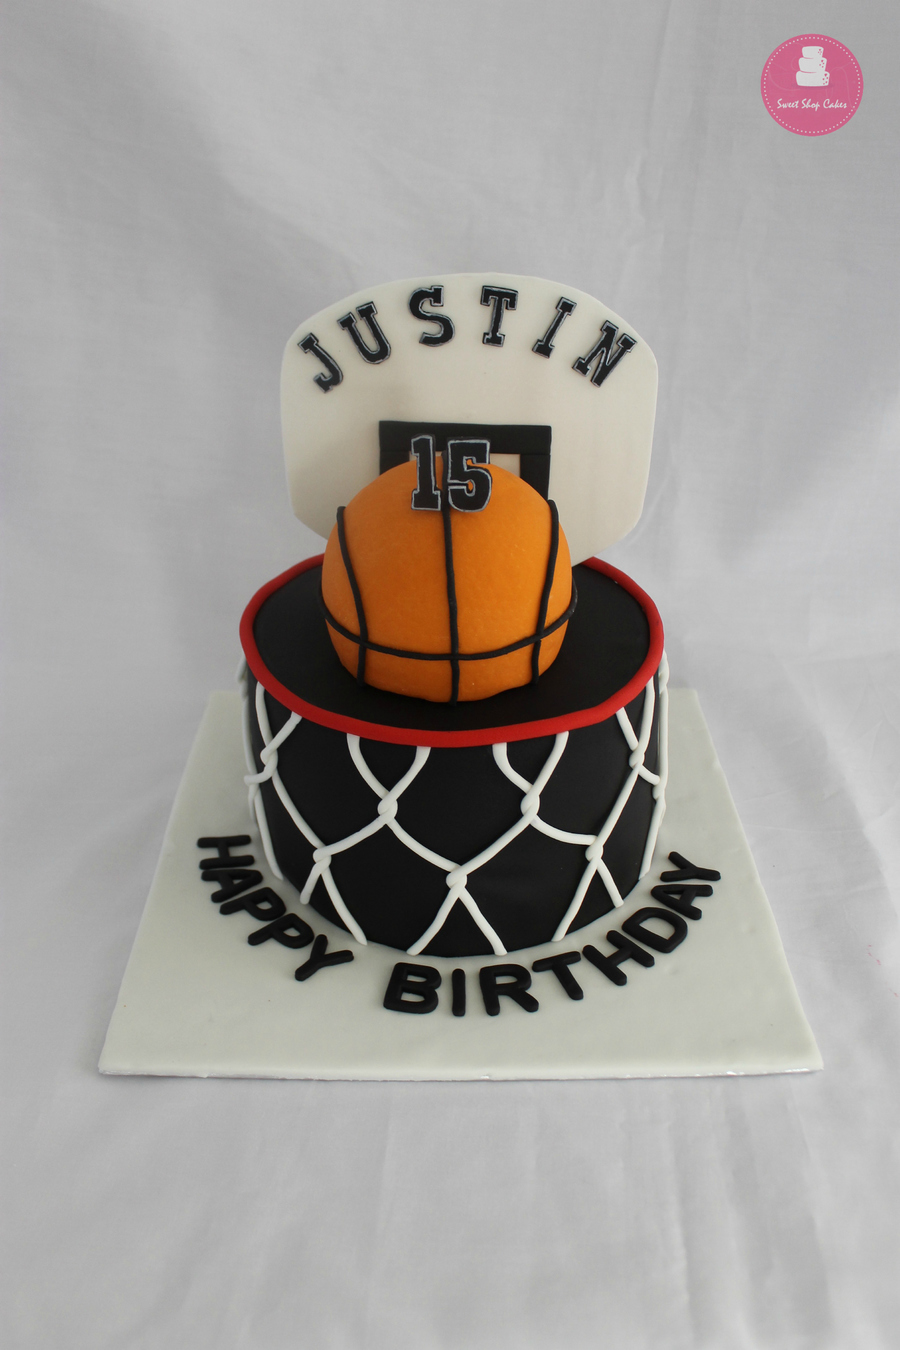 v8uvWYYFJq-basketball-themed-birthday-cake_900.jpg